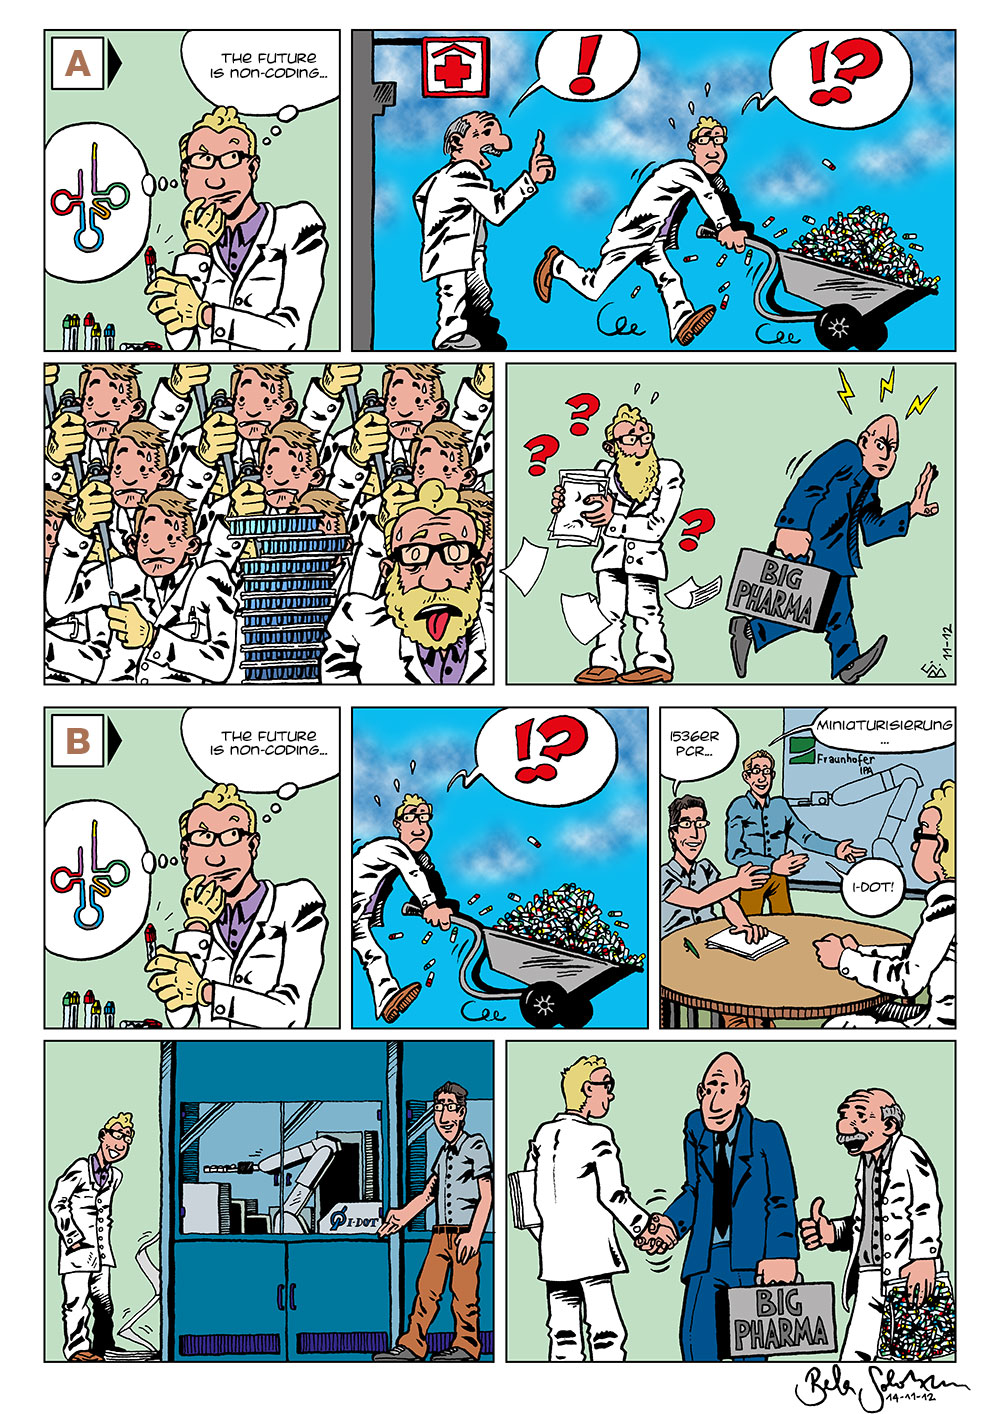 fraunhofer_ipa_comic_2012